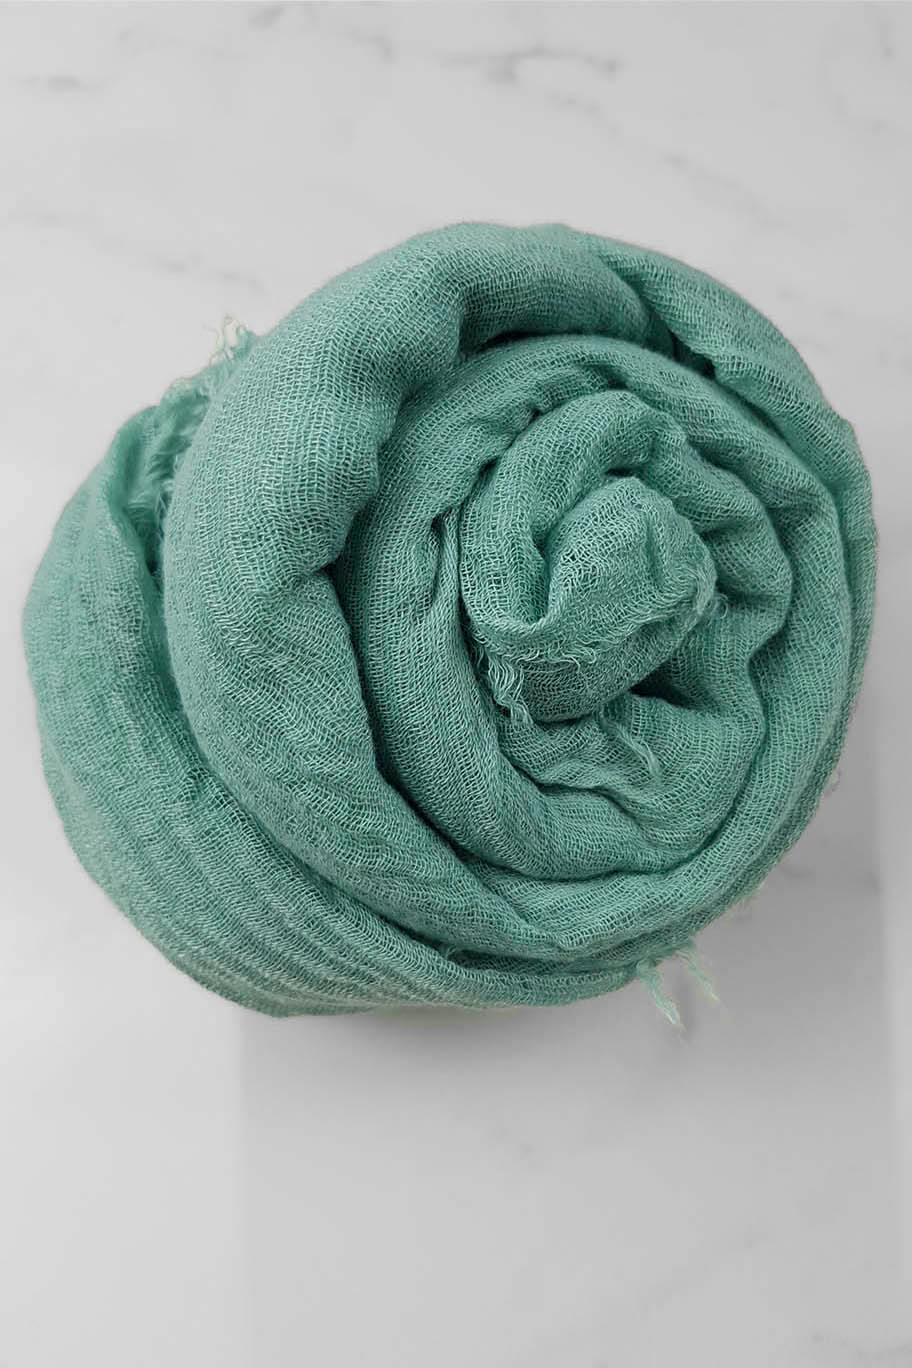 Pastel Mint Green Crinkle Cotton - Crinkle Cotton Hijabs - The Modest Look